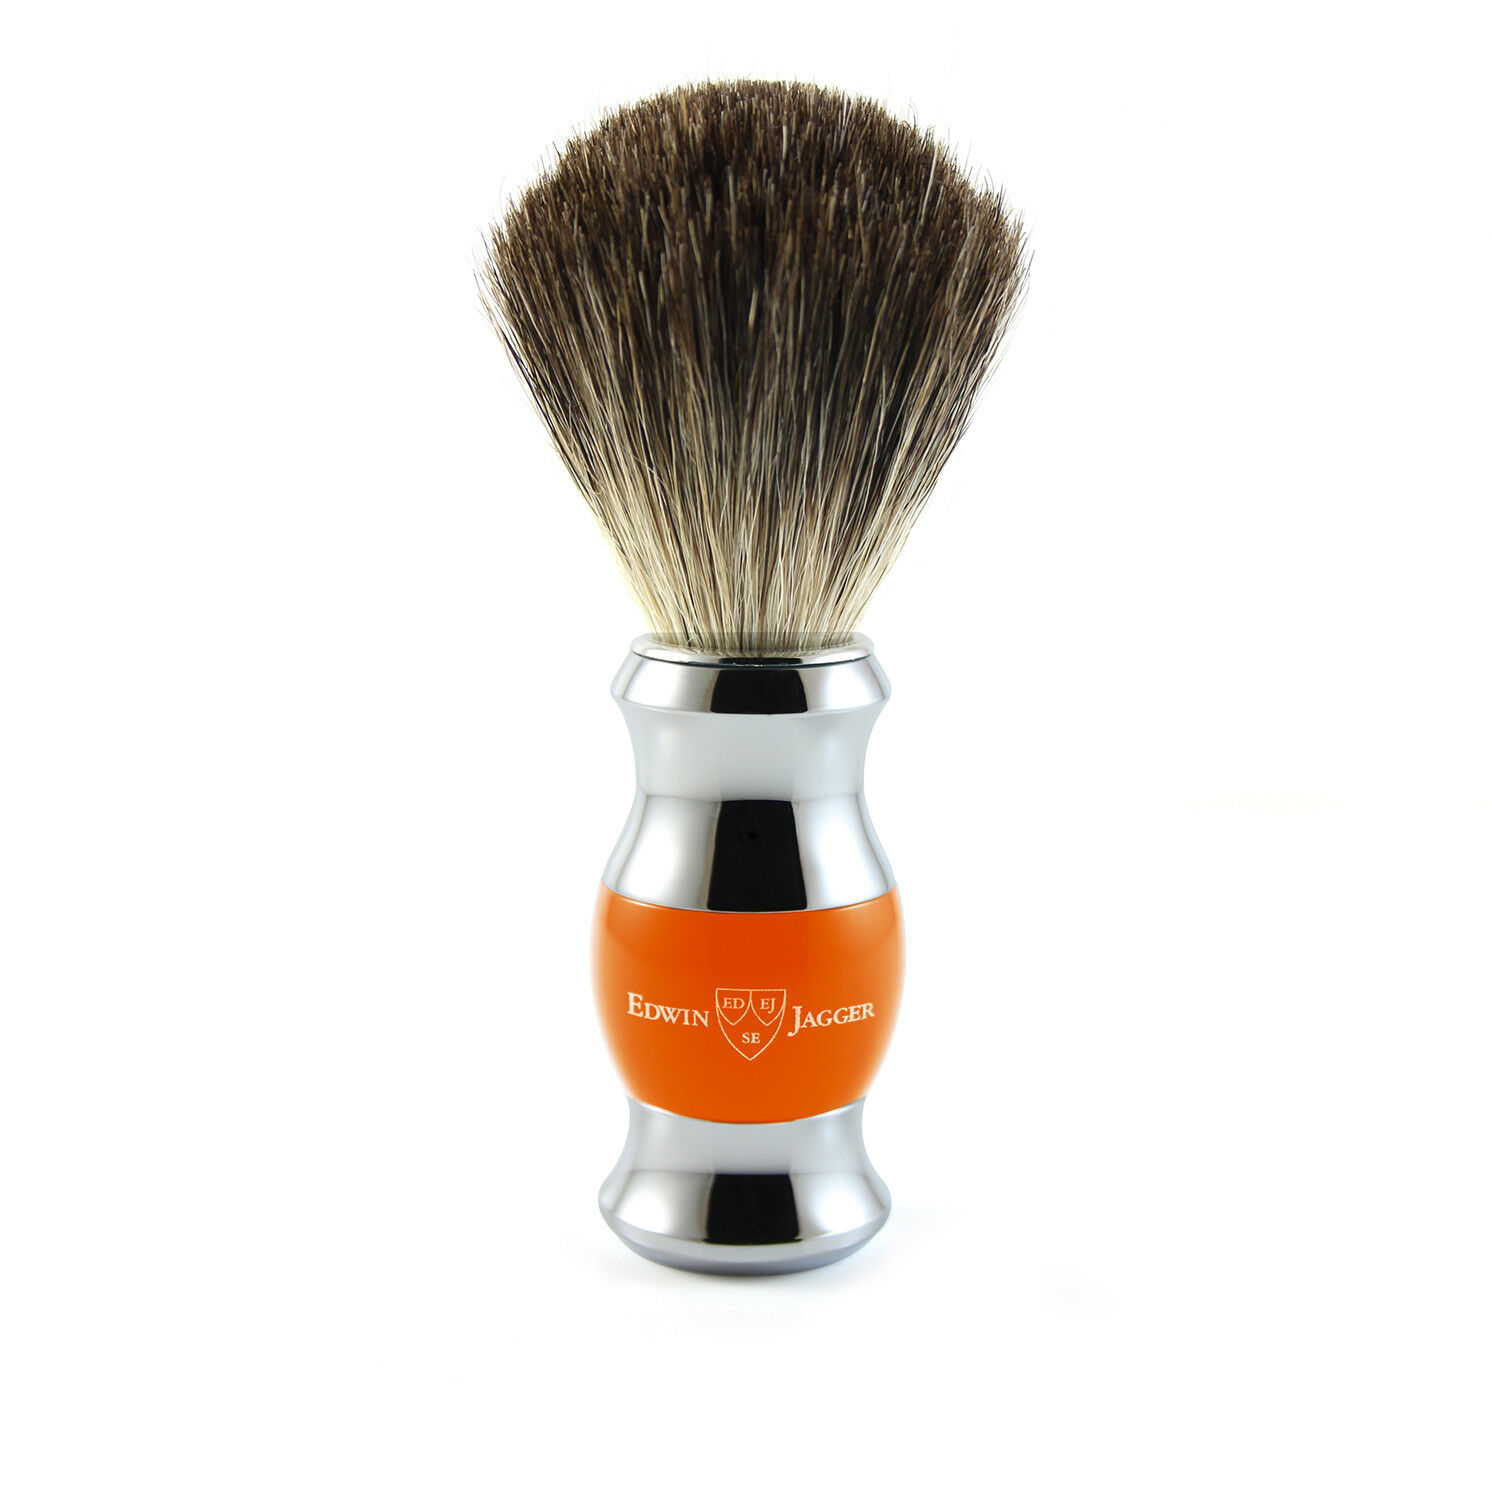 Edwin Jagger – Orange & Chrome Shaving Brush (Black Synthetic) in Gift Box